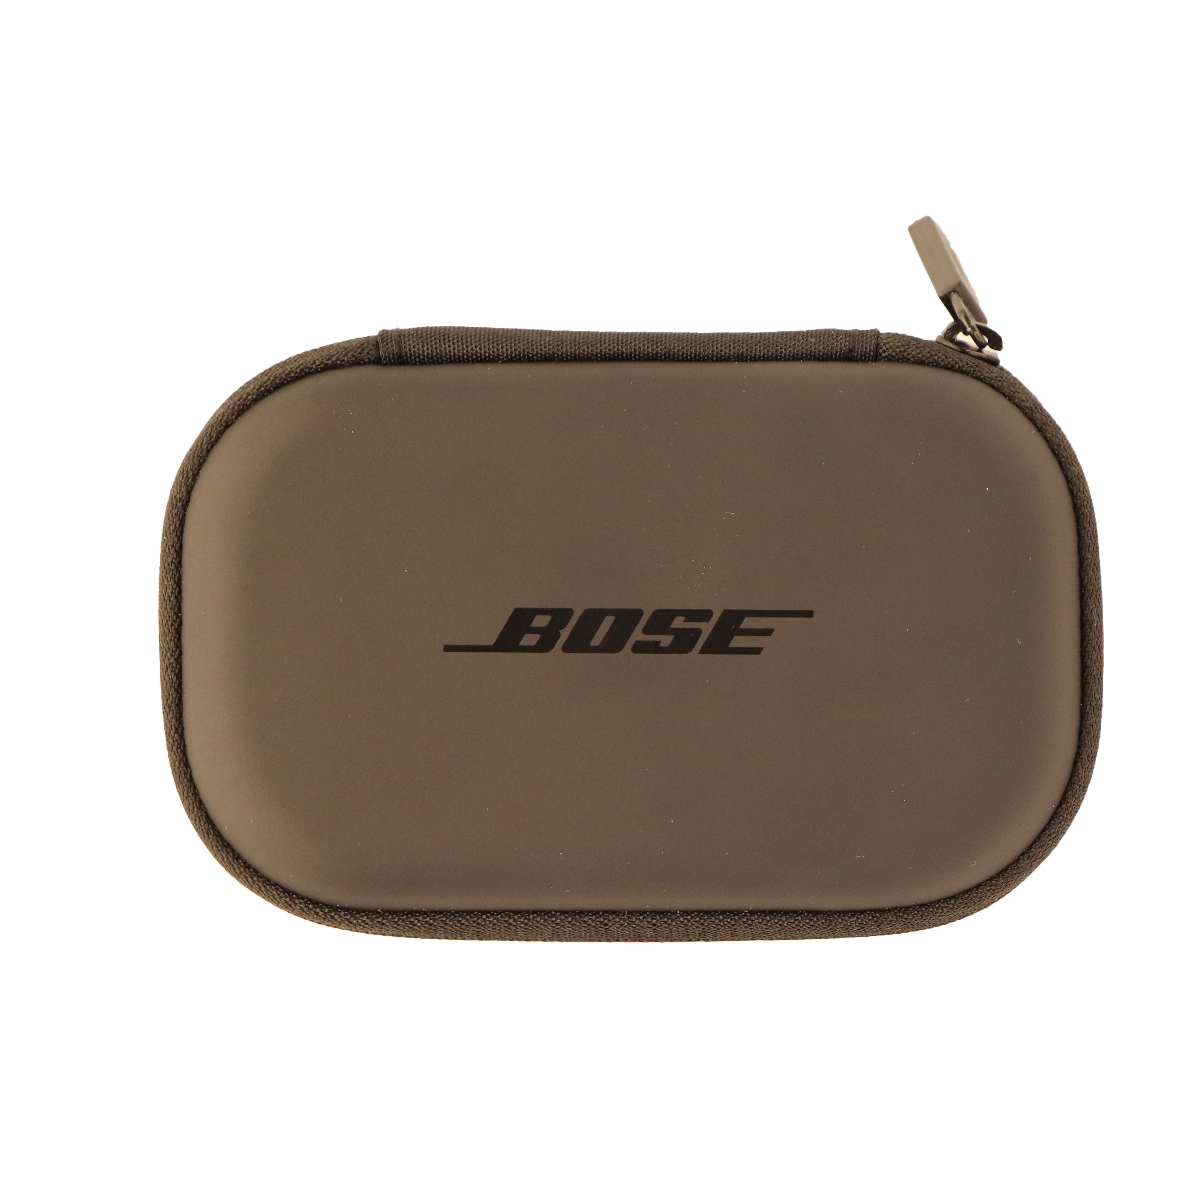 Genuine Bose SoundSport Rechargeable Micro-USB Charging Case w/ Zipper - Black